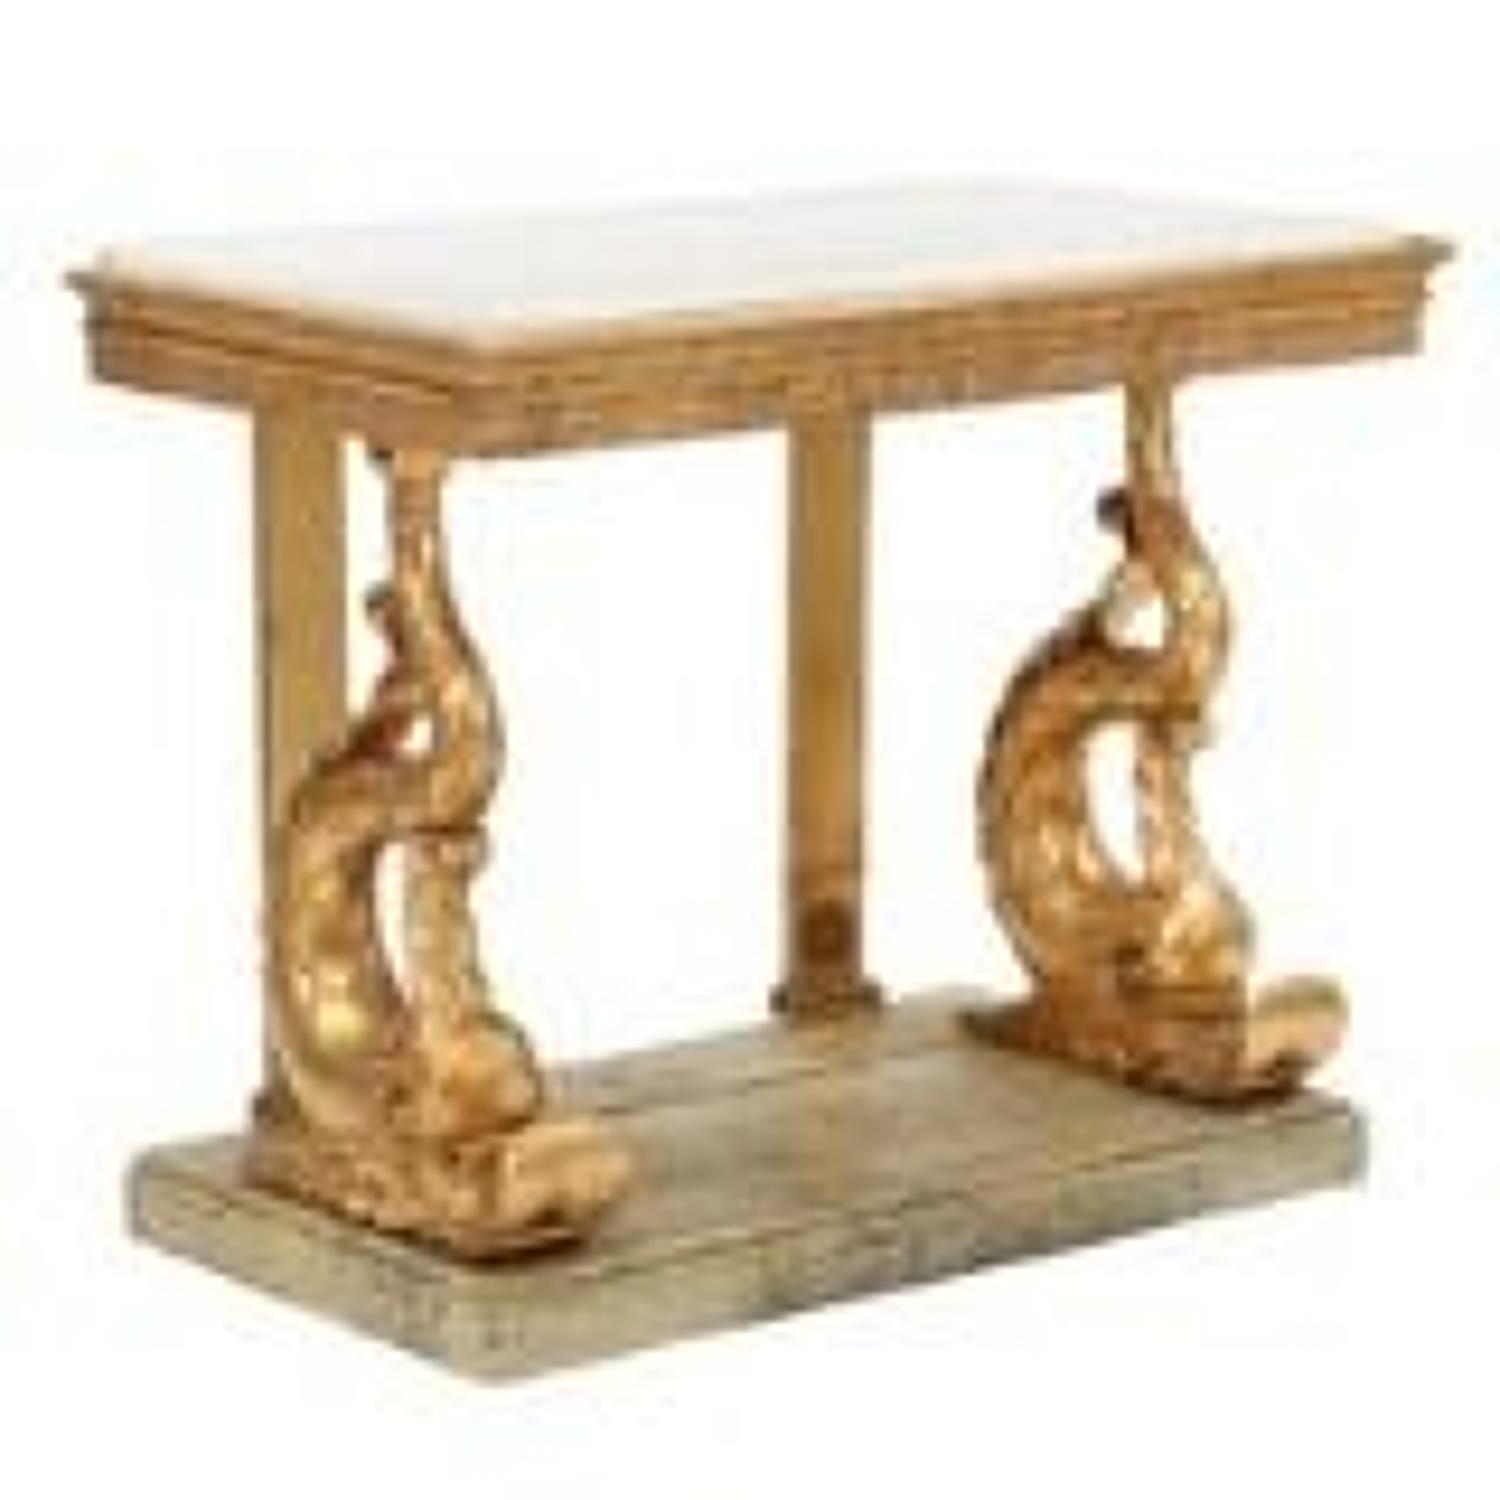 A SWEDISH CARVED GILTWOOD CONSOLE TABLE